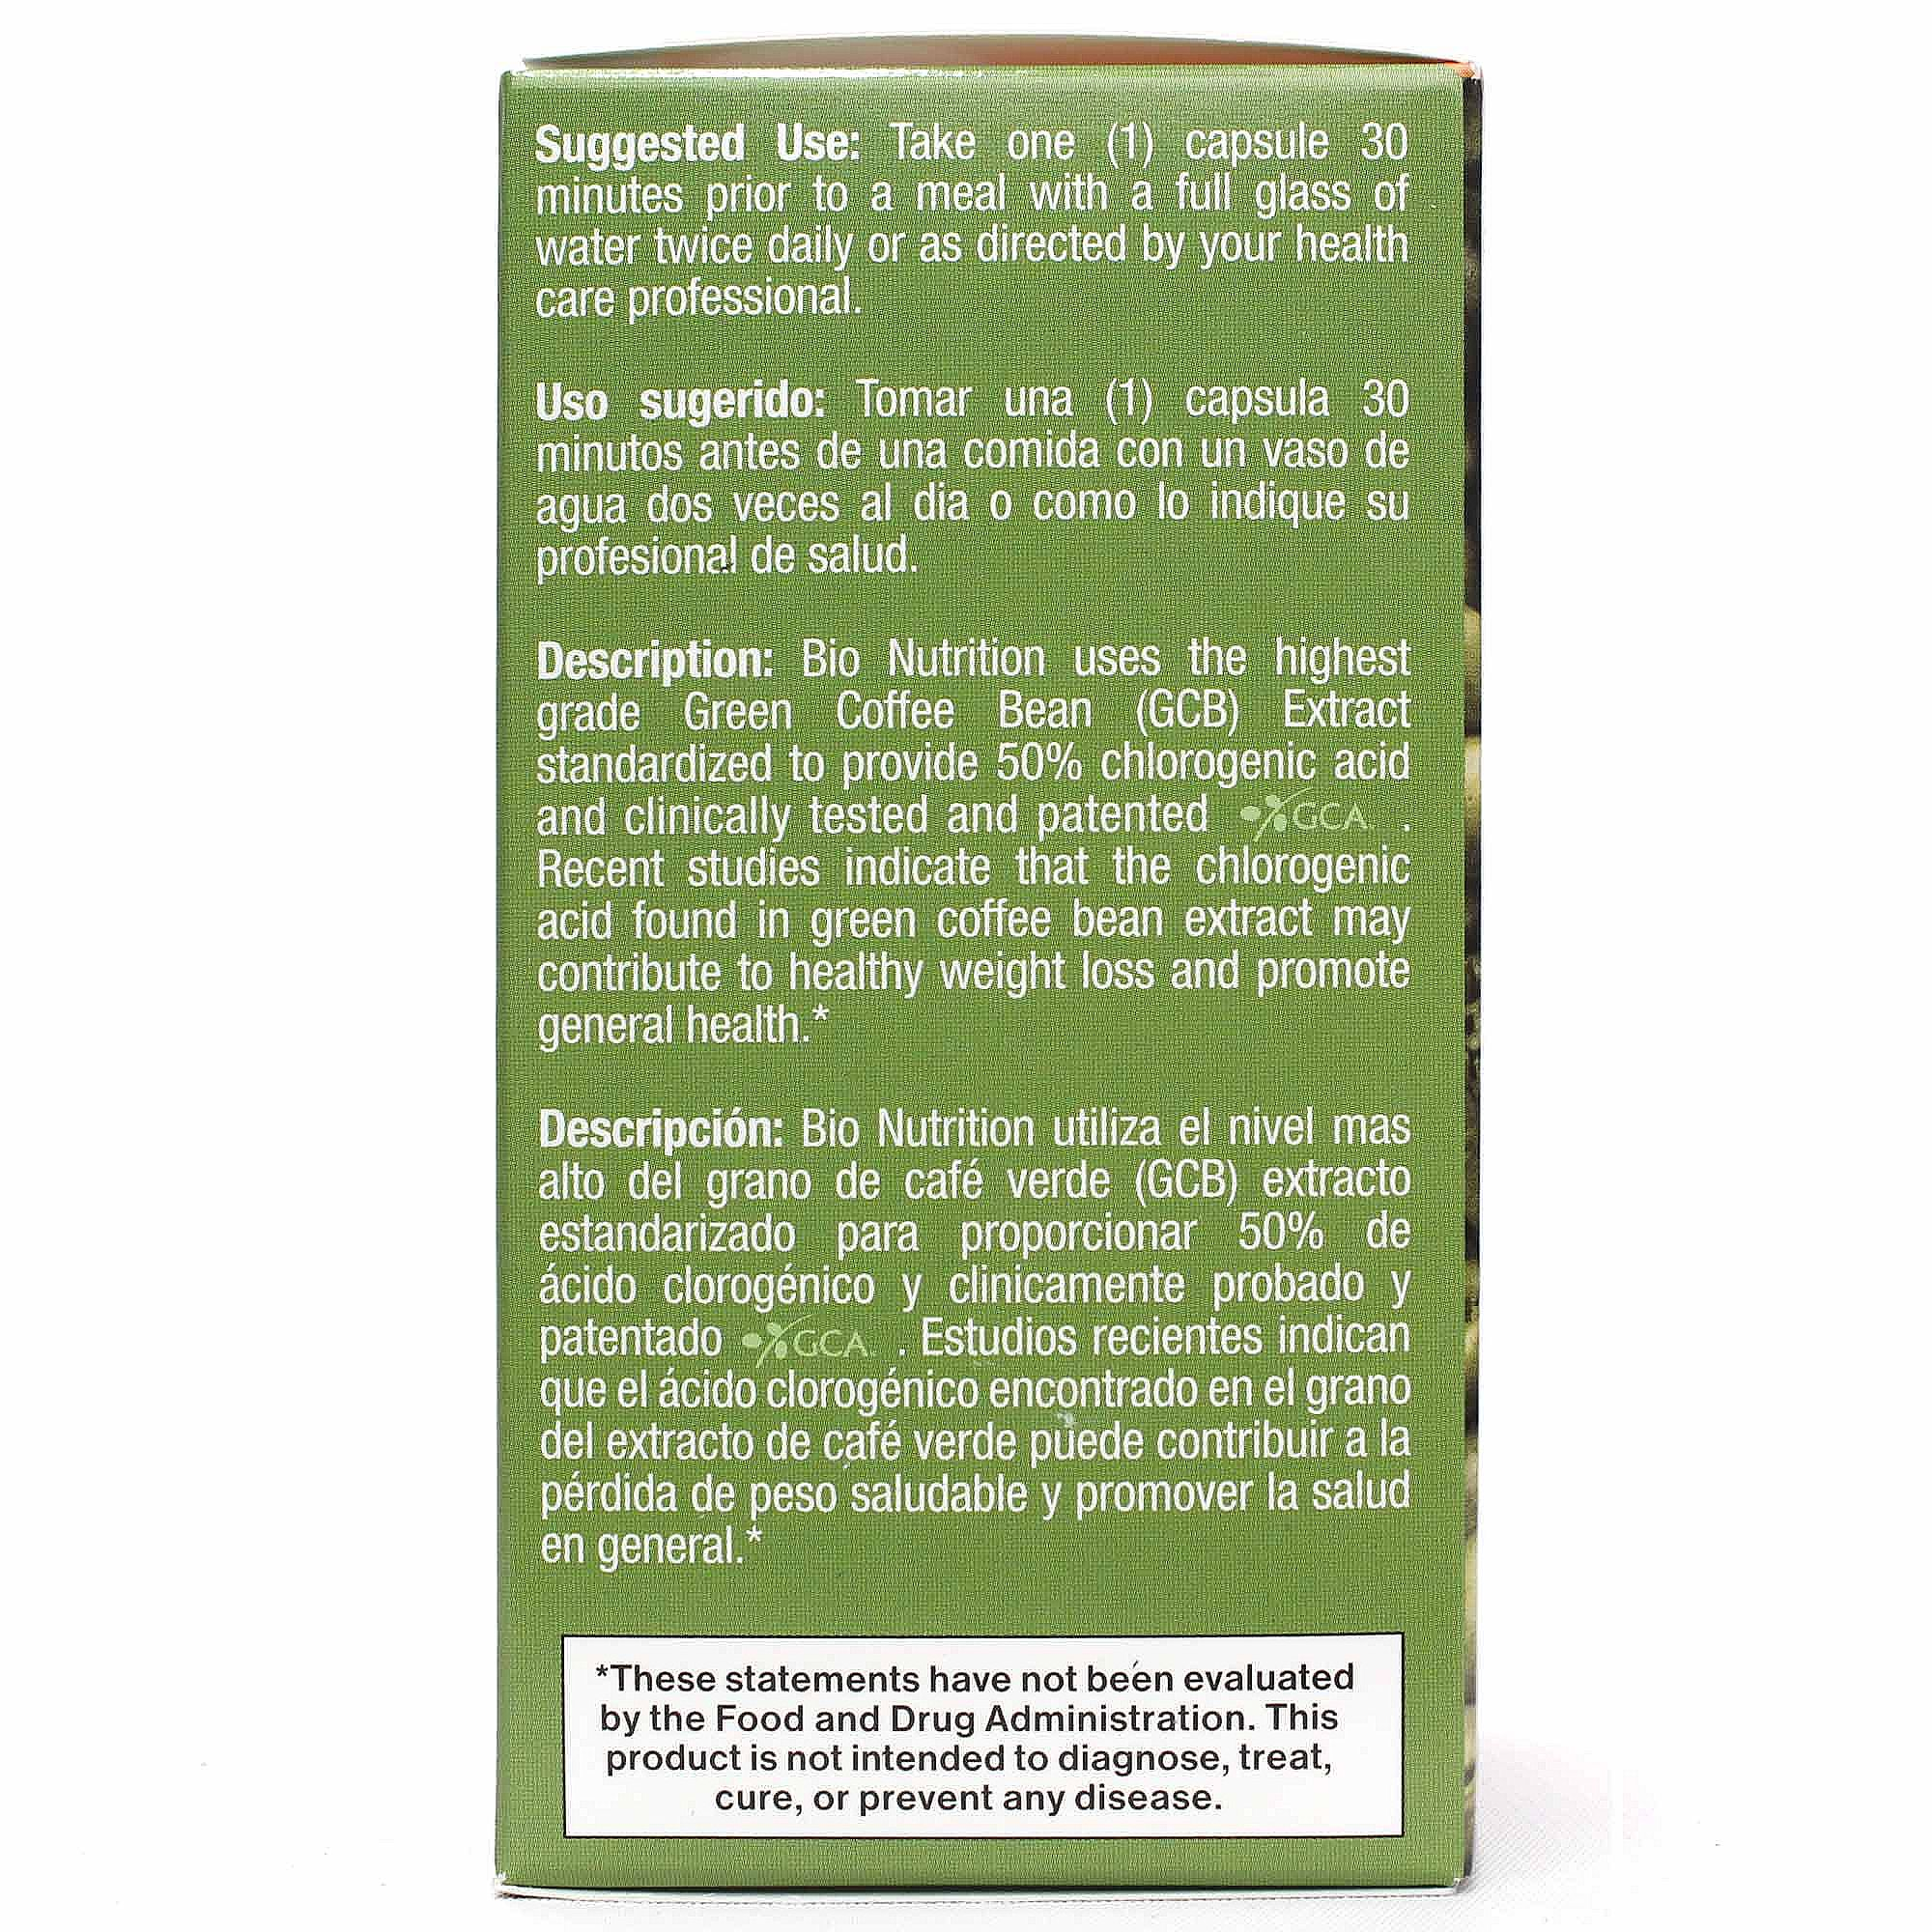 Forever garcinia plus instructions picture 5